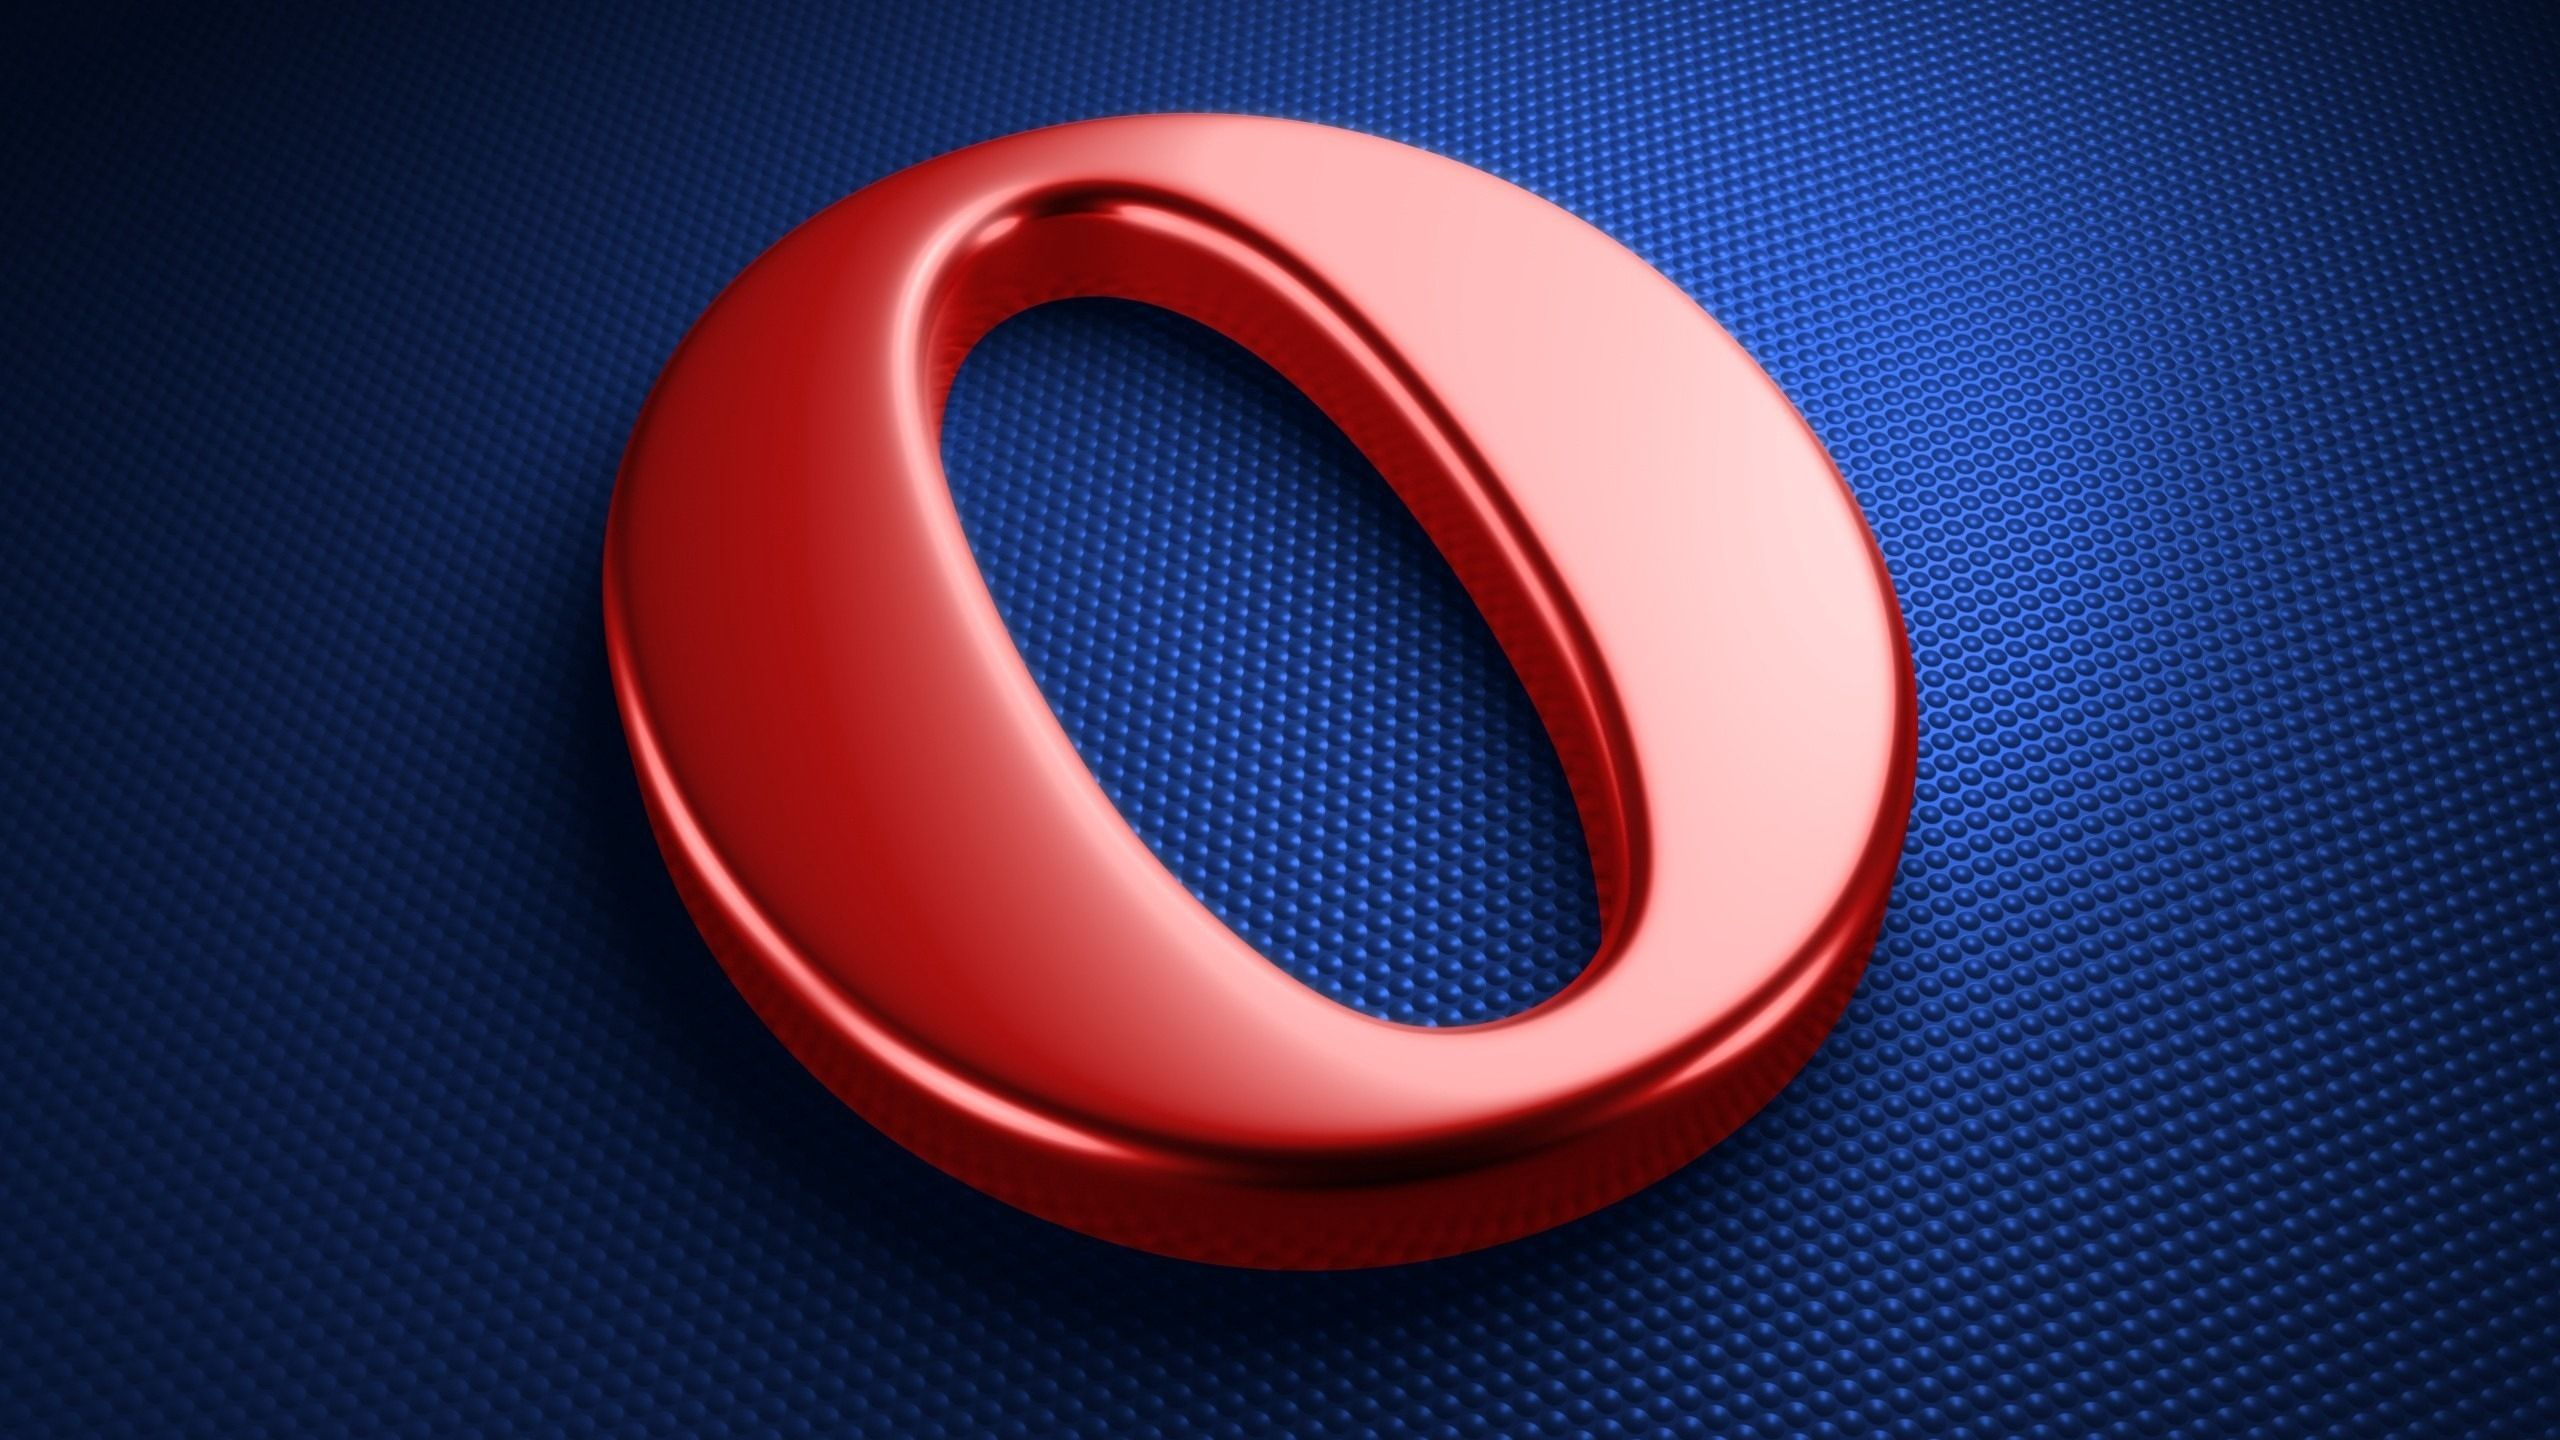 2560x1440 Download wallpaper 2560x1440 opera, blue, red, browser ...